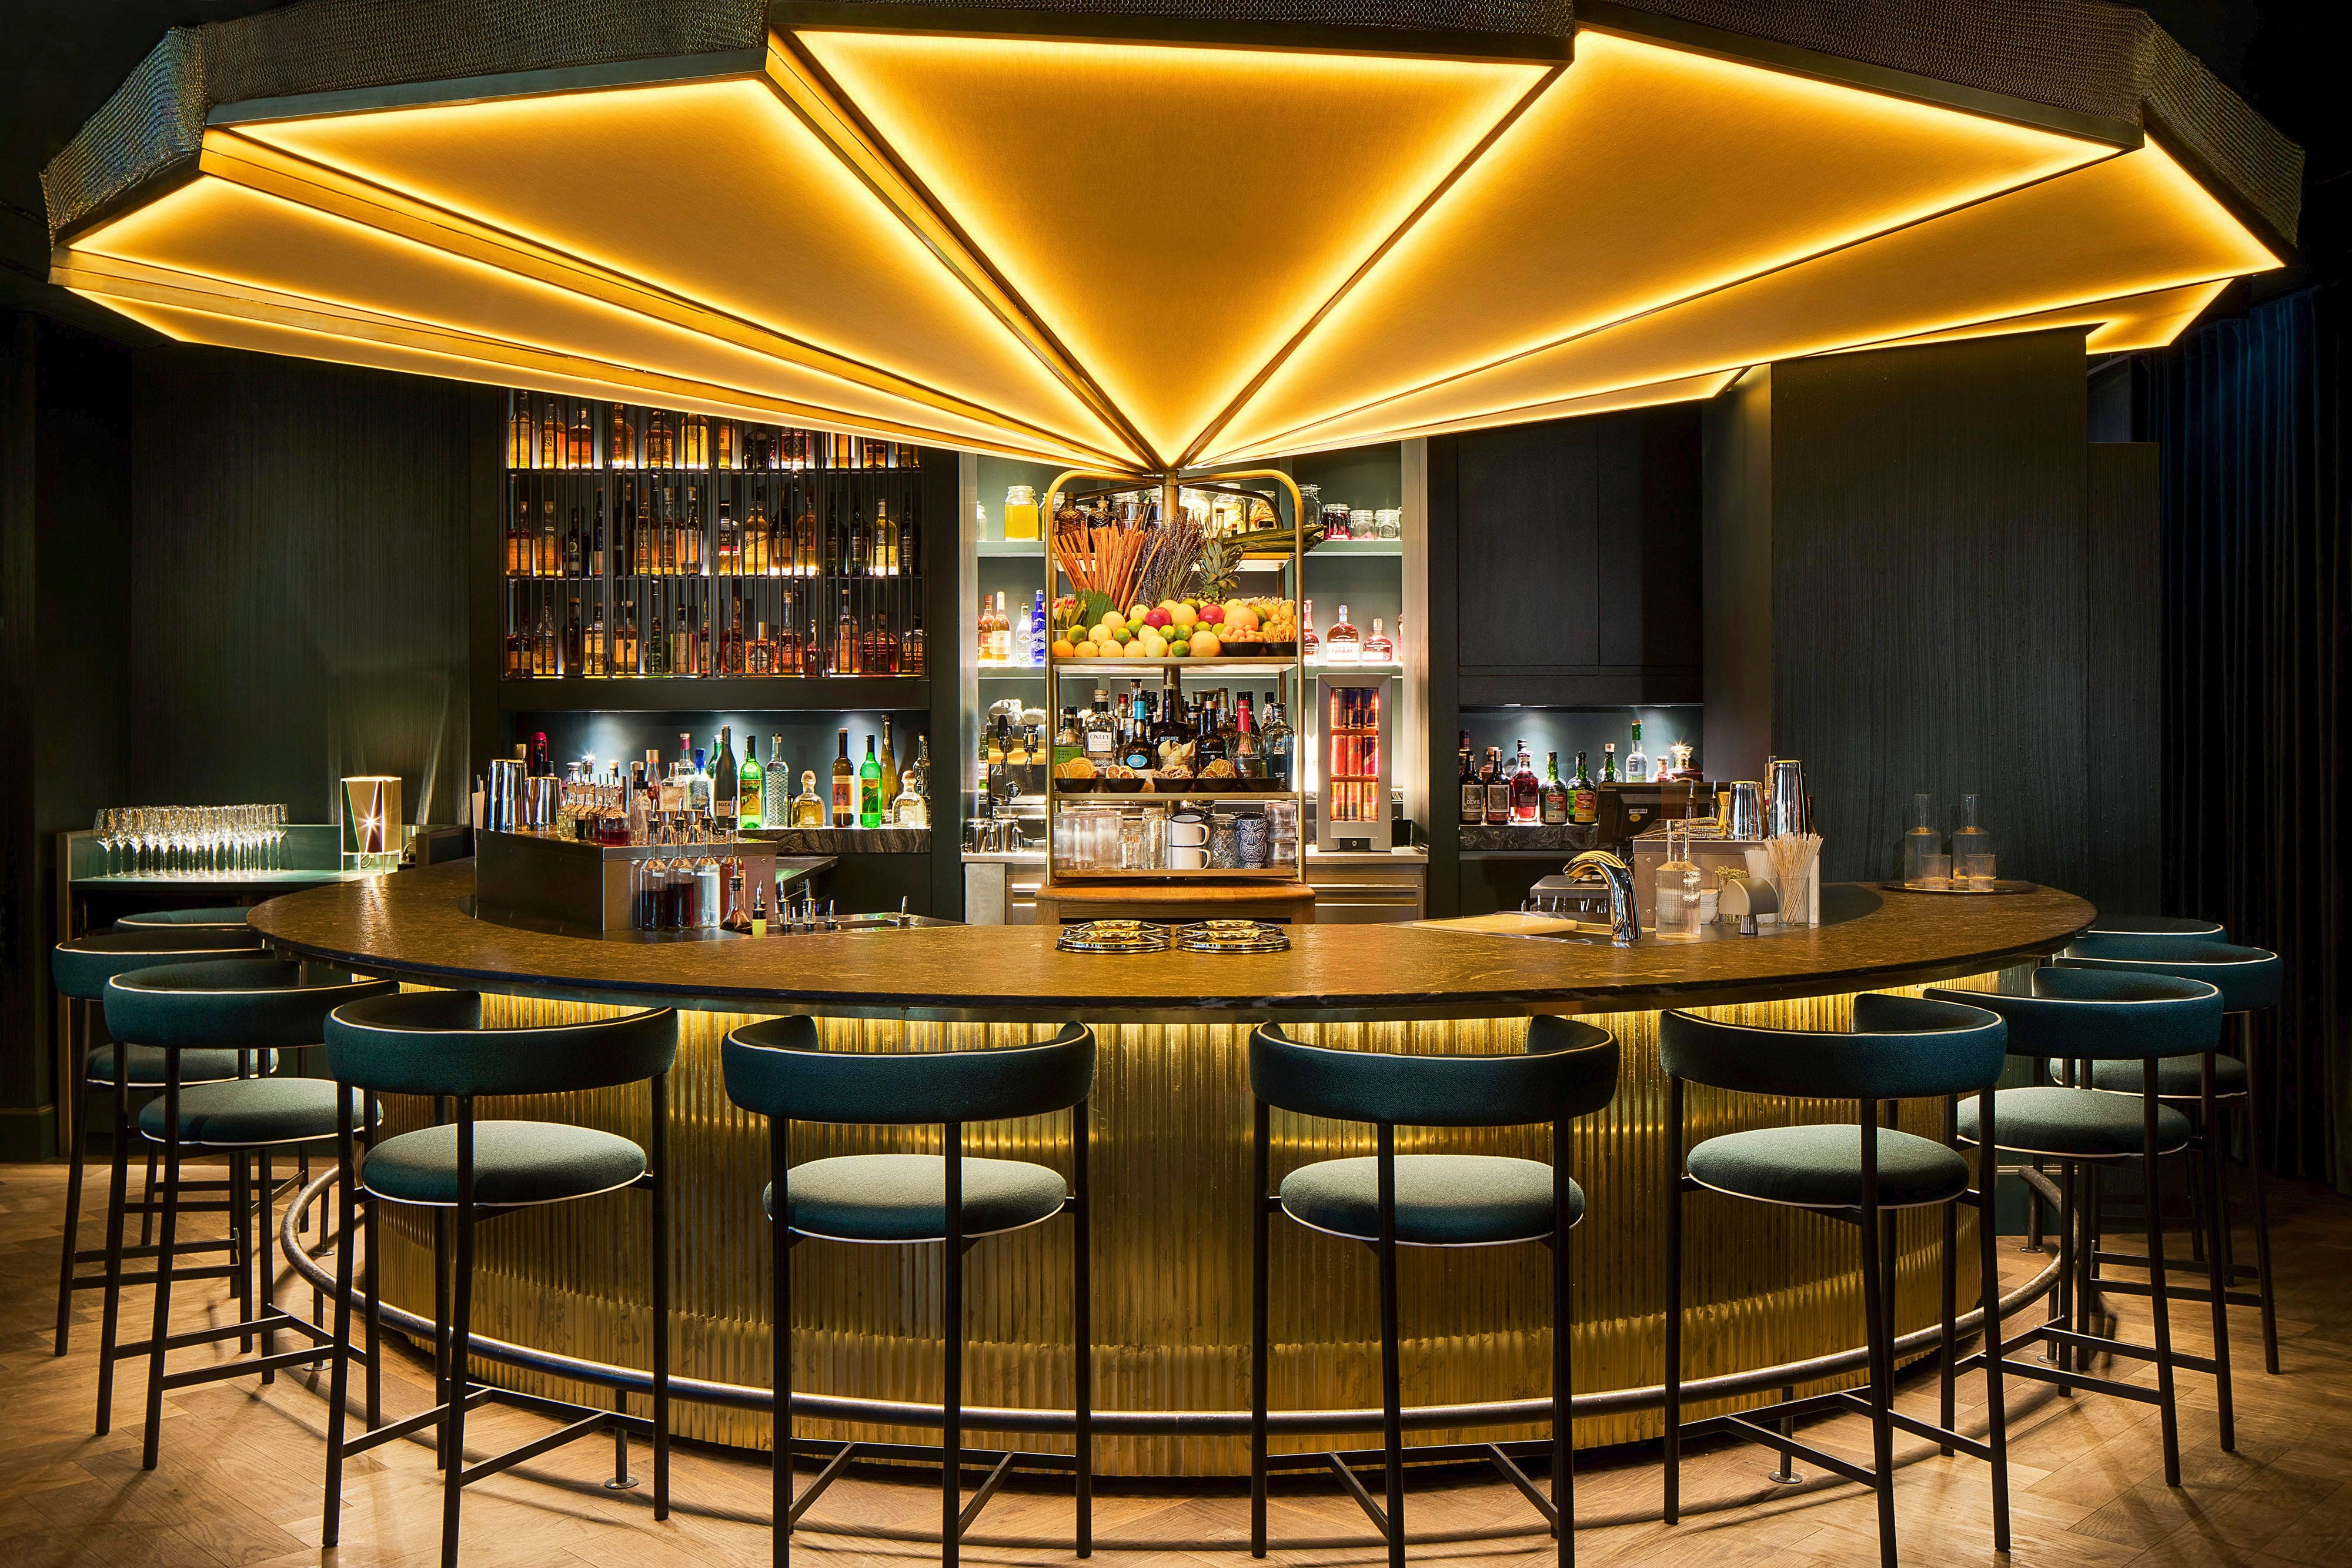 Six Of The Best Bars In Munich Luxury Travel Mo Magazine